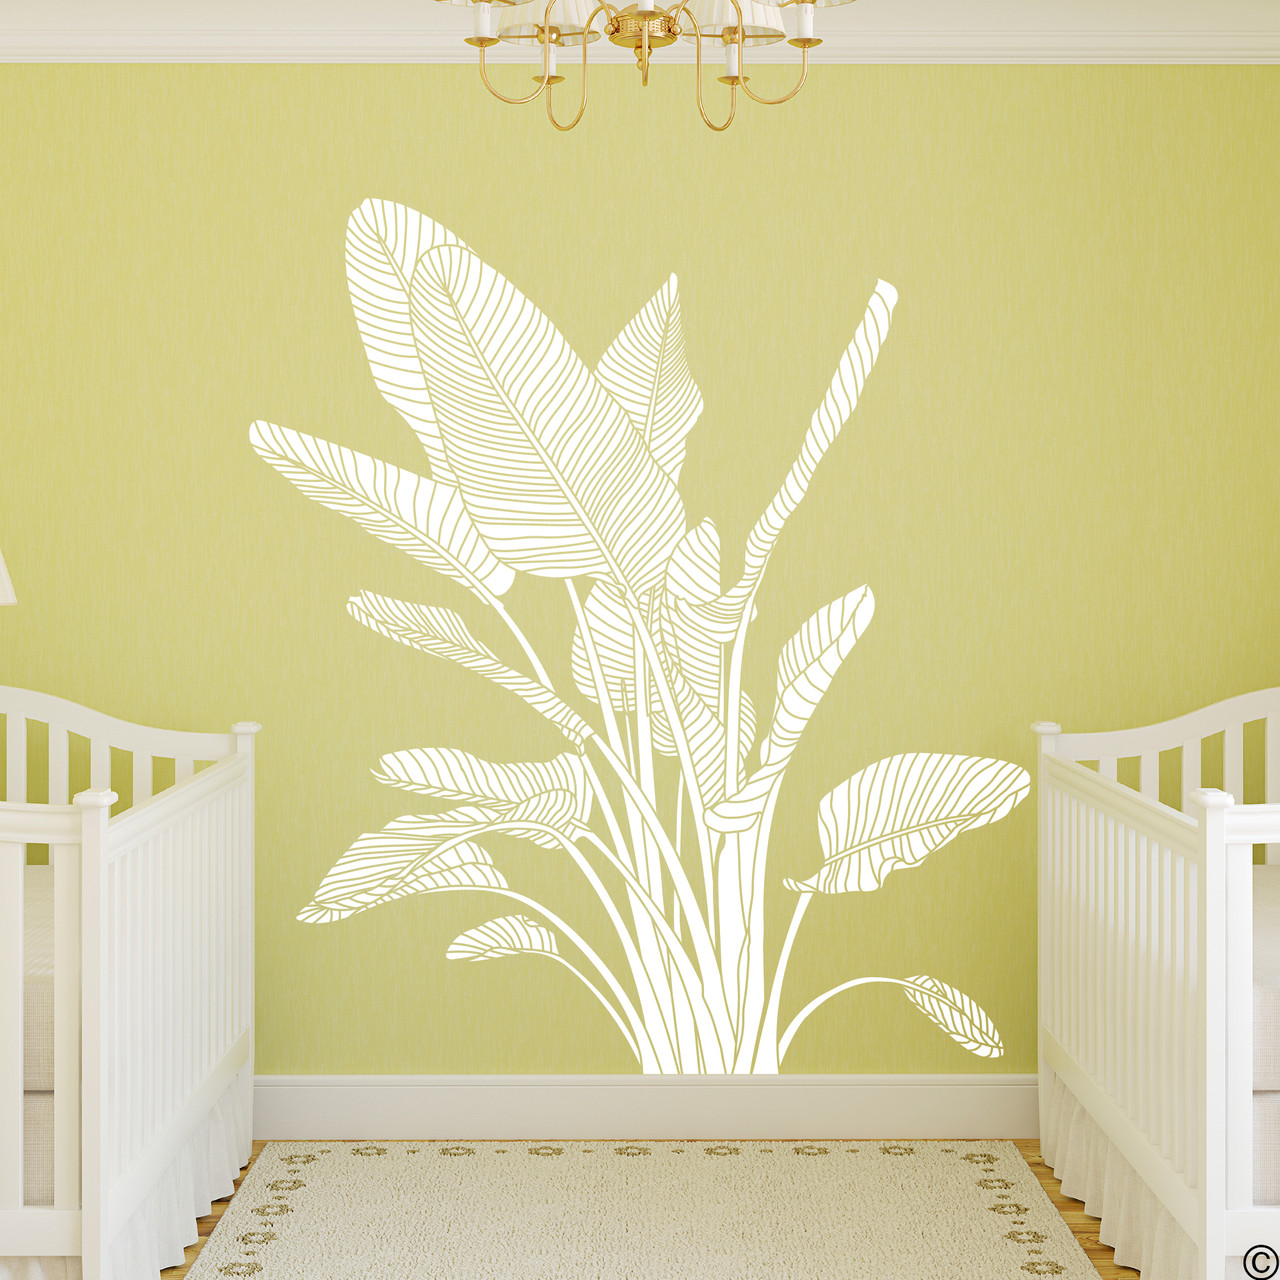 The Bird of Paradise wall decal art shown here in white vinyl color.